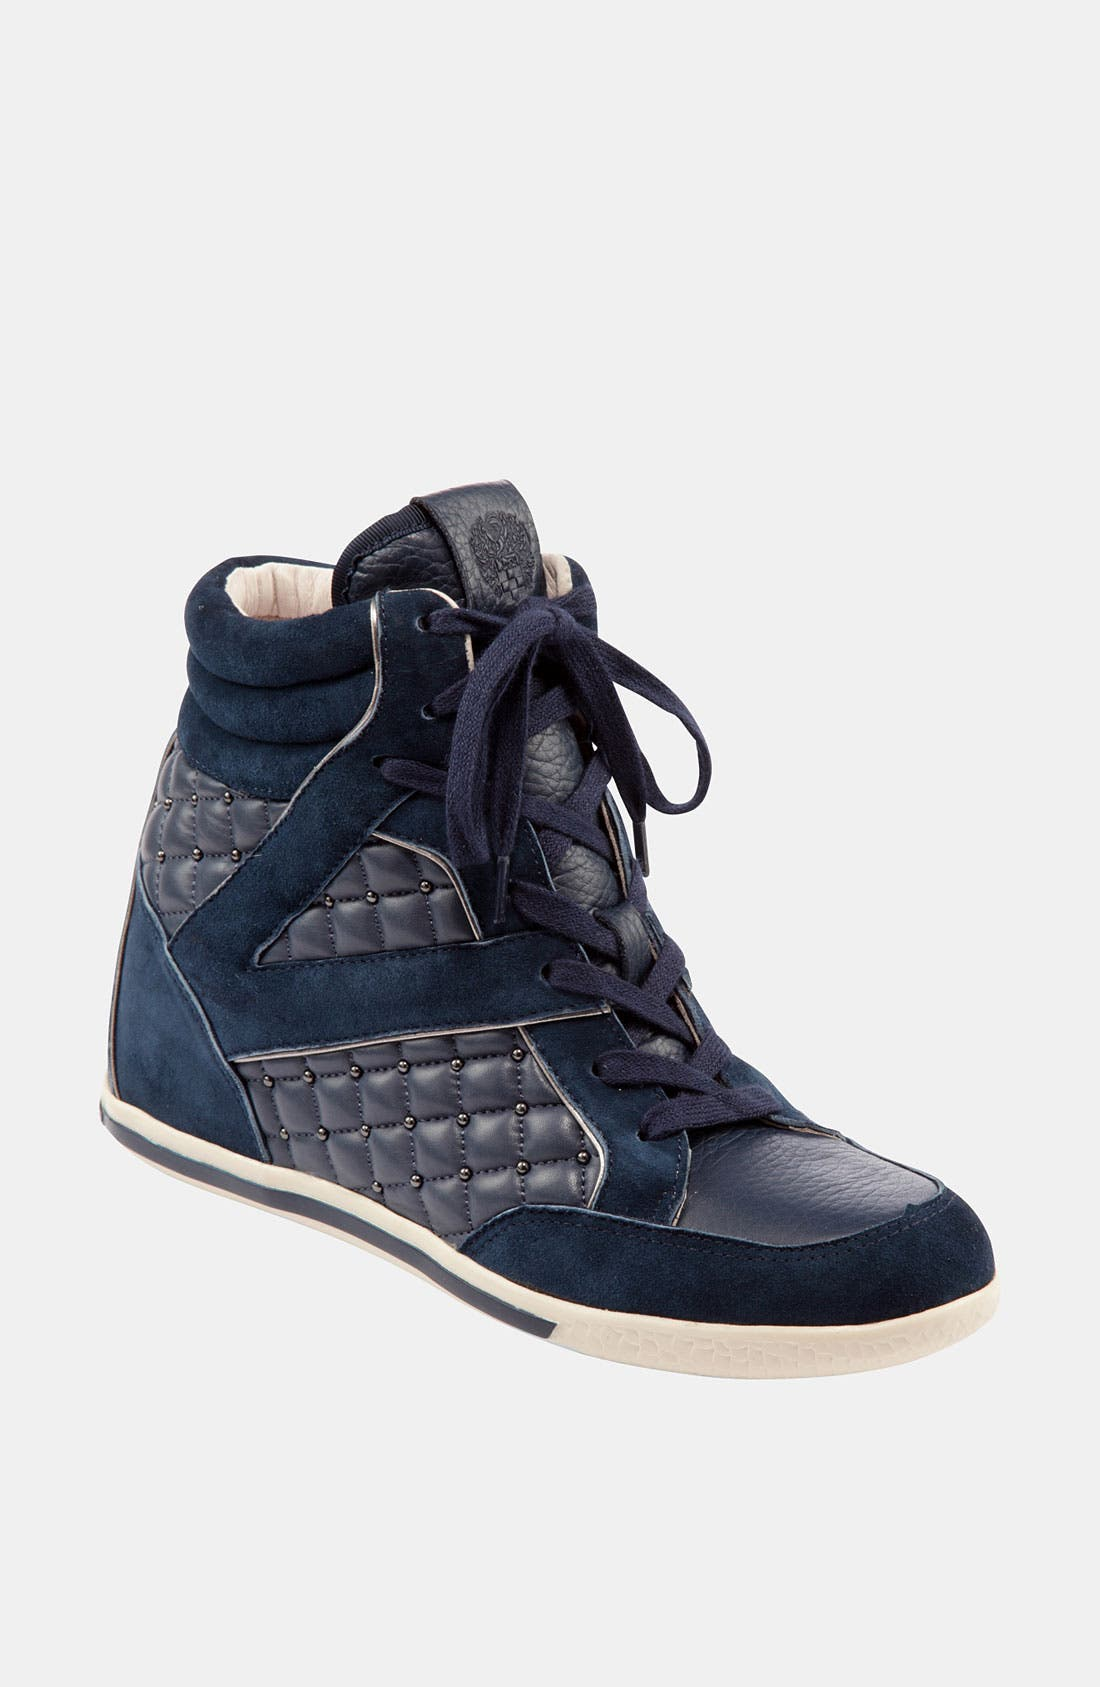 Alternate Image 1 Selected - Vince Camuto 'Follie' Sneaker